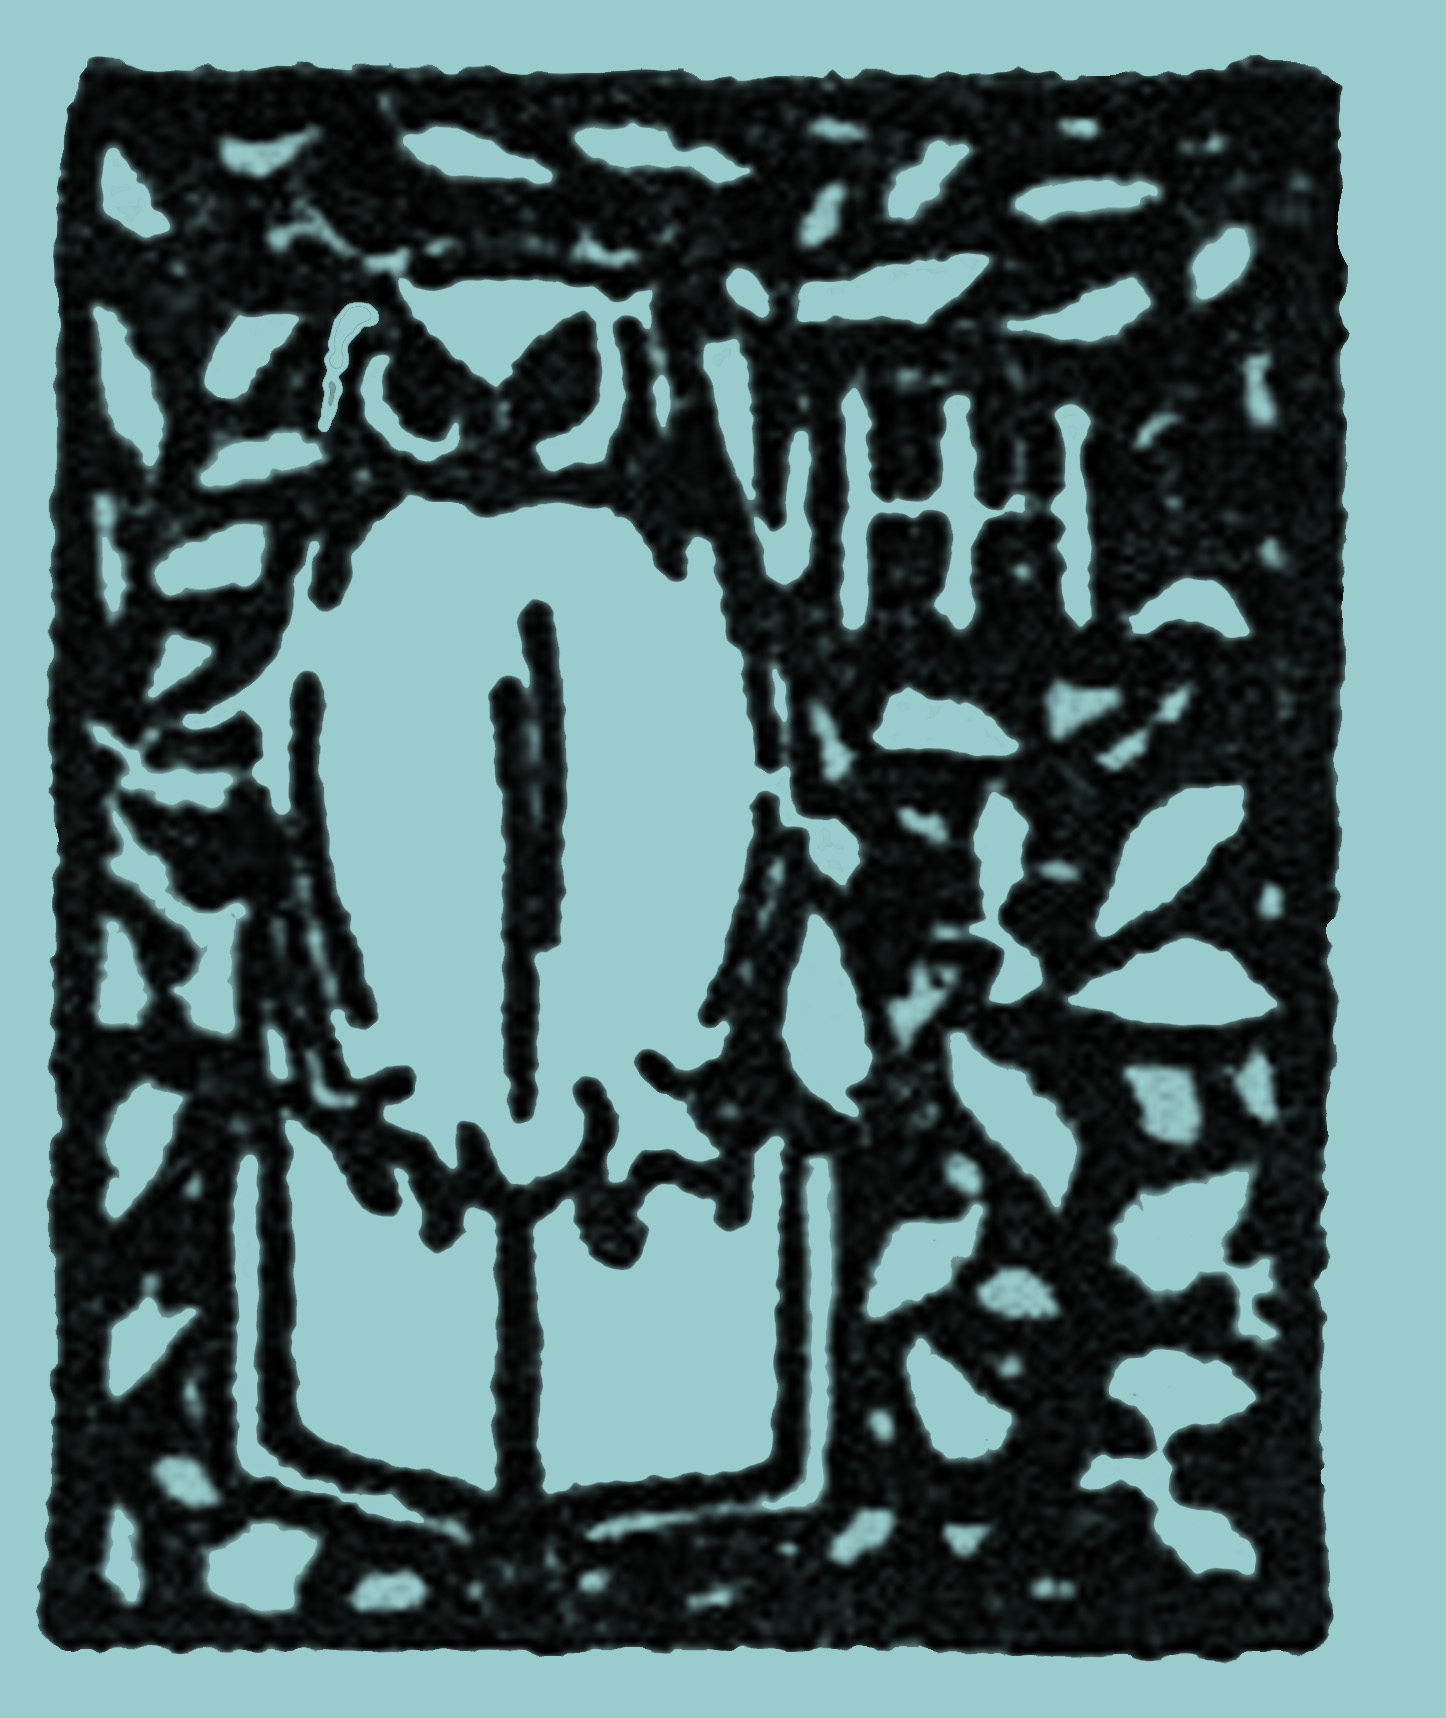 Engraving of the woodcut of the printer's logo for Henry Holt, showing an owl perched on an open book, the letter H H are in the background.